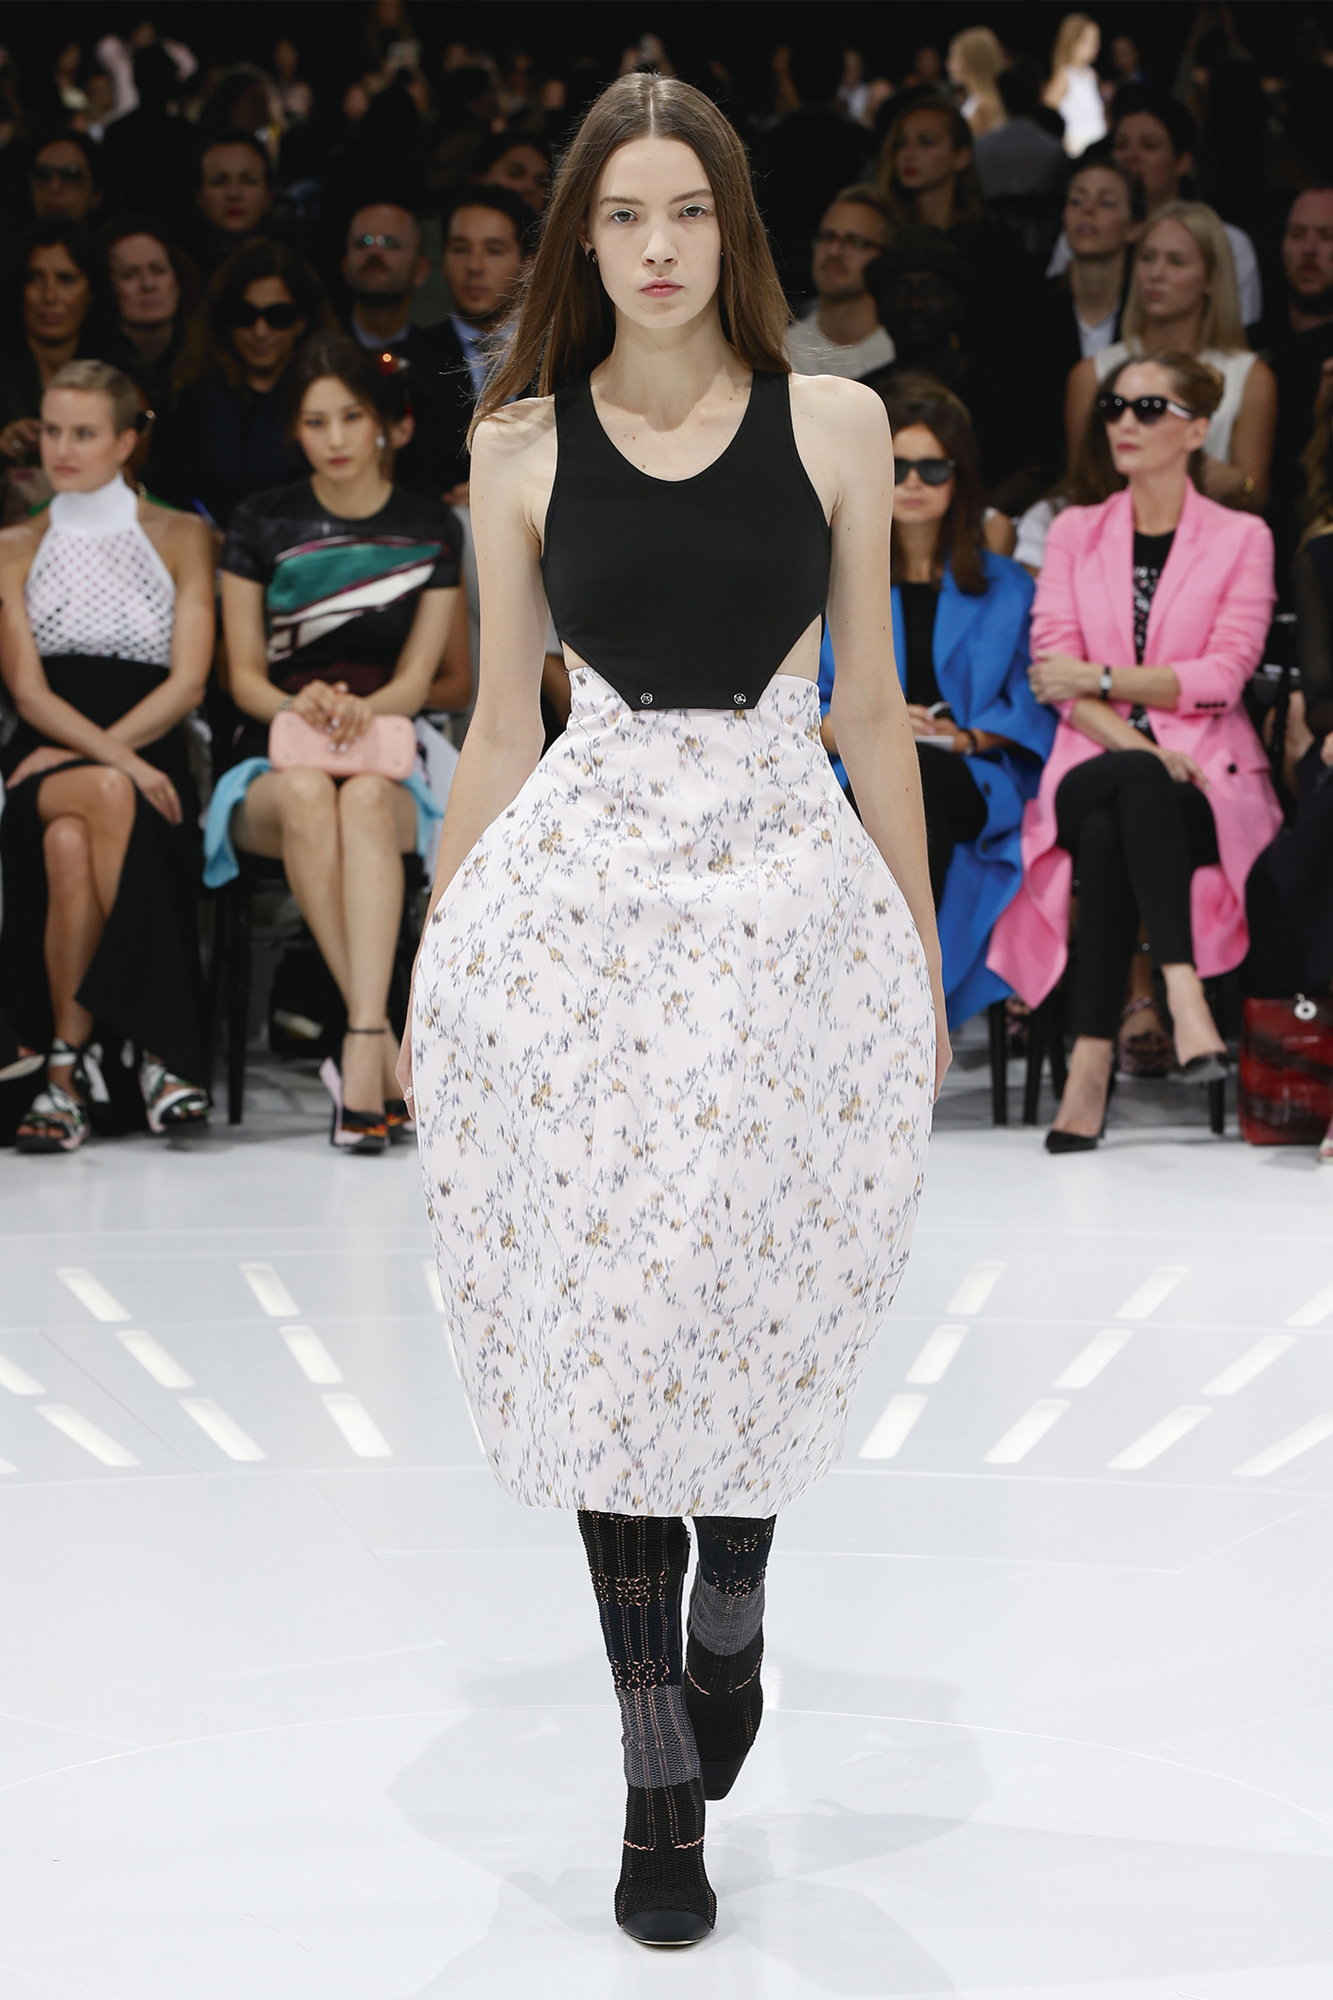 Christian Dior Haute Couture Spring-Summer Ready To Wear Dresses & Accessories Collection 2015-16 (16)